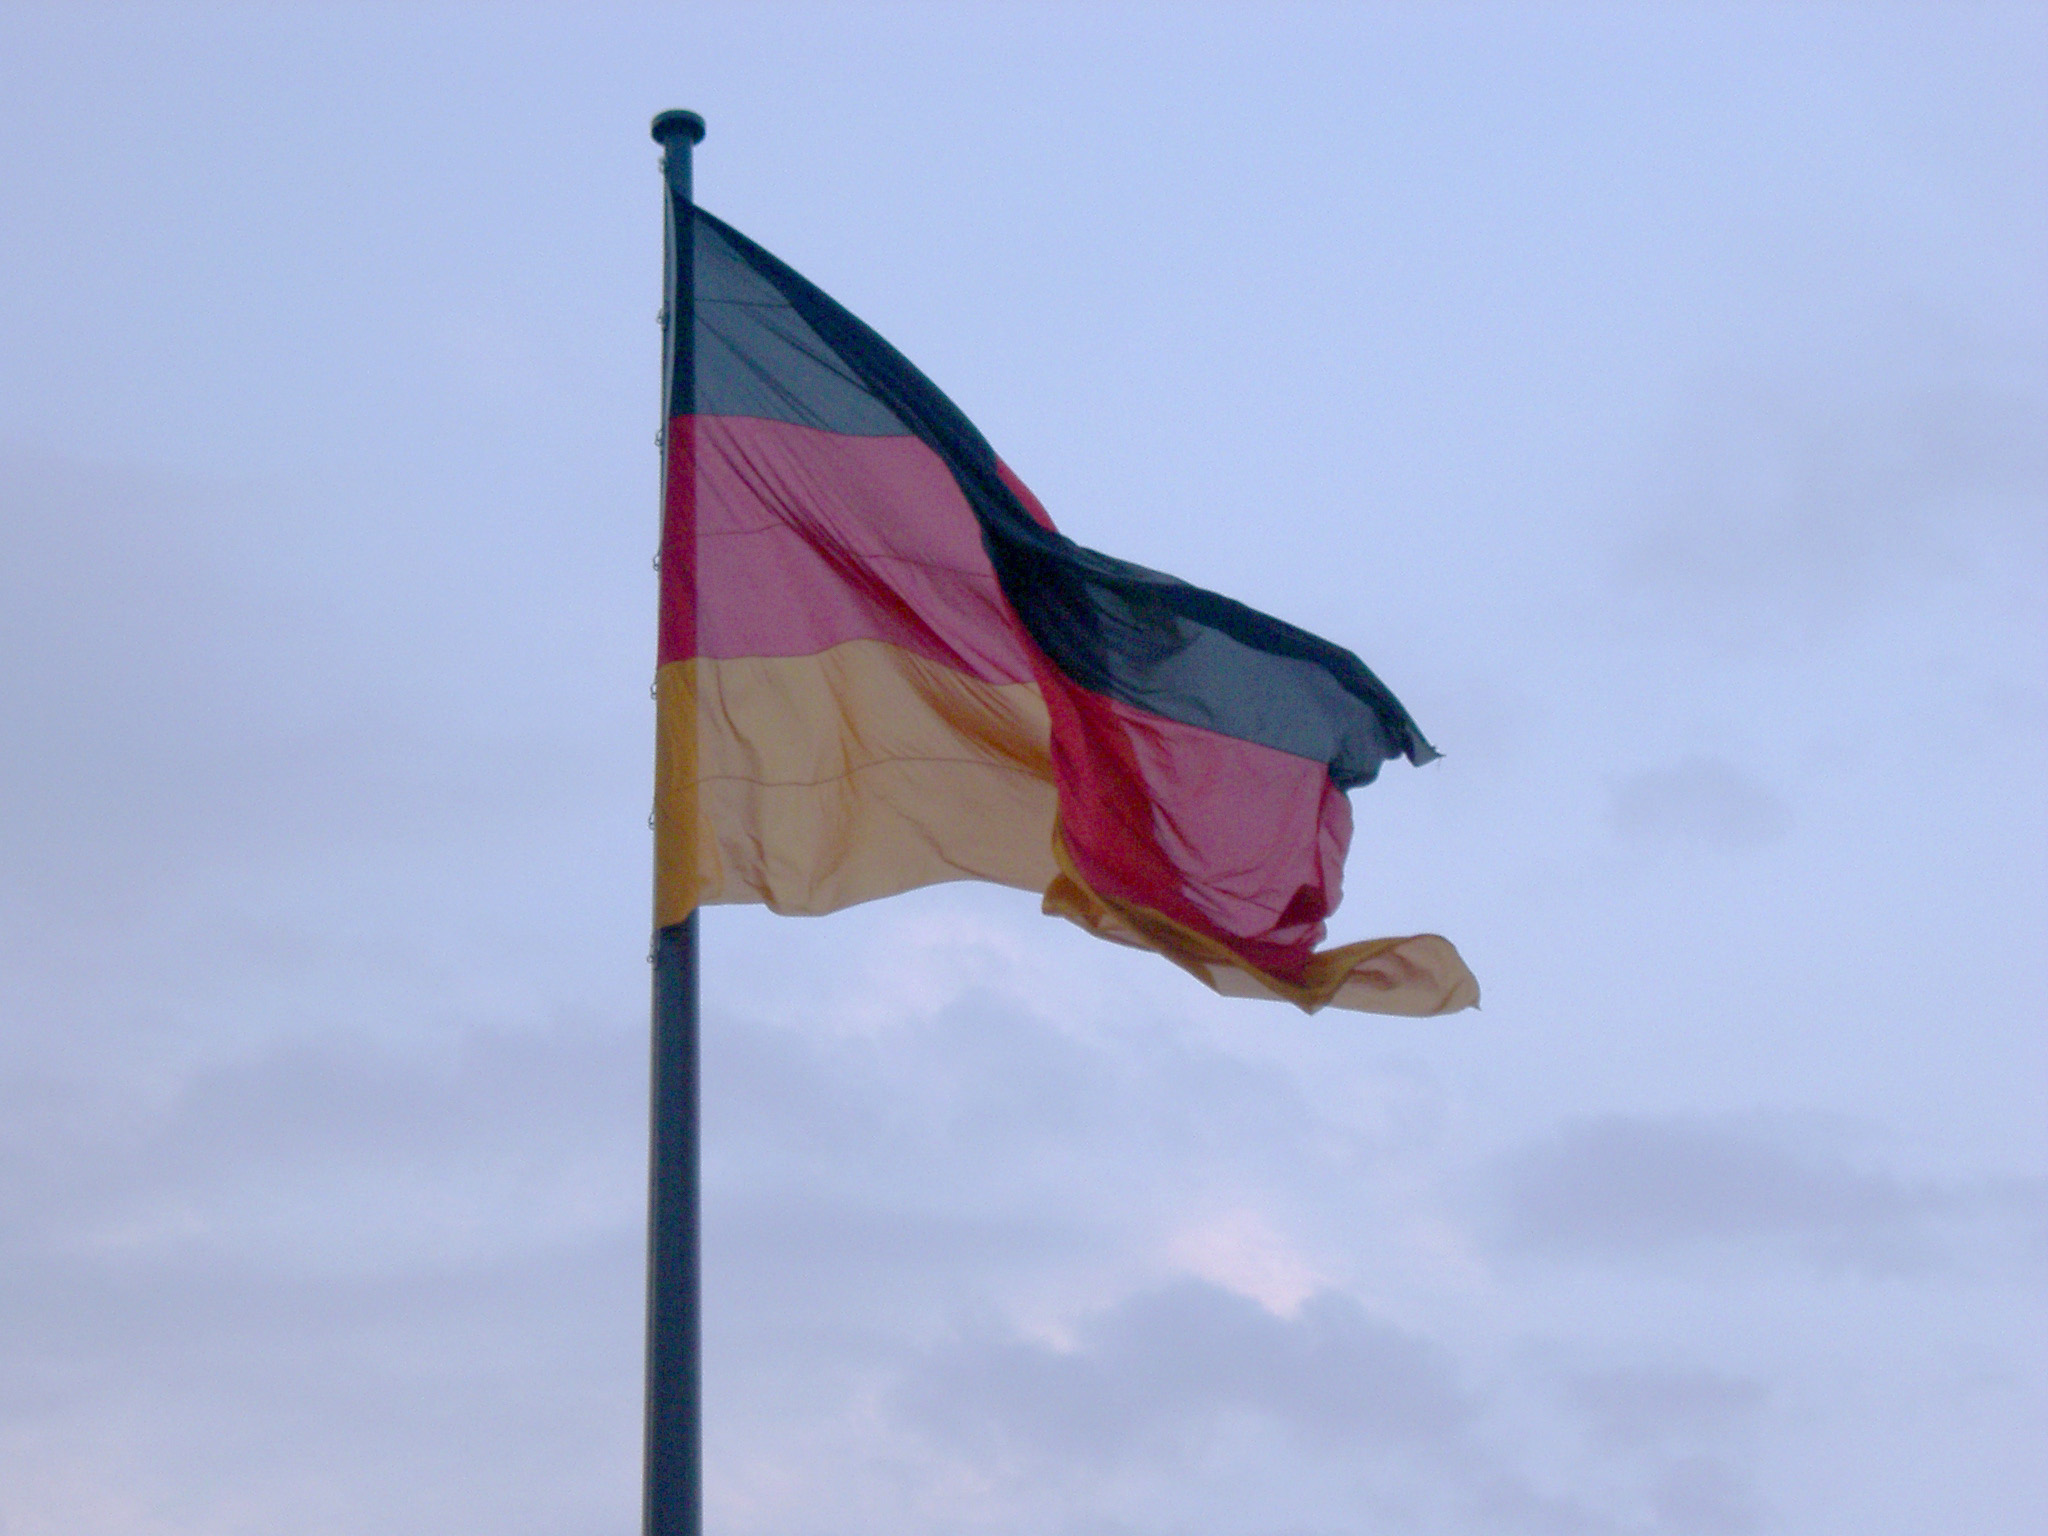 Flag of Germany fluttering in the wind against a cloudy sky, symbol of German national pride and identity